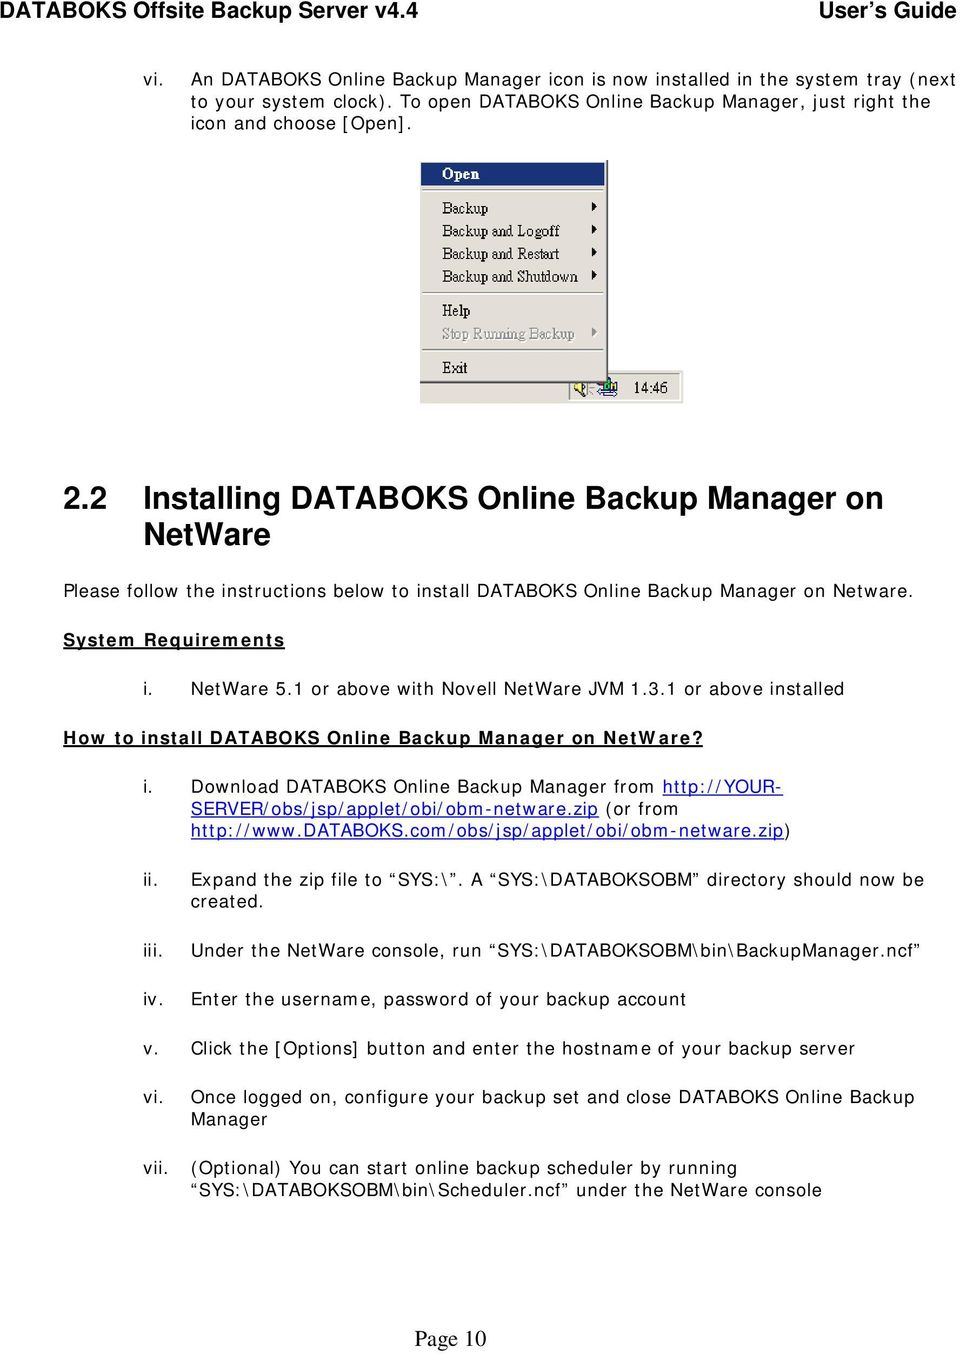 1 or above with Novell NetWare JVM 1.3.1 or above installed How to install DATABOKS Online Backup Manager on NetWare? i. Download DATABOKS Online Backup Manager from http://your- SERVER/obs/jsp/applet/obi/obm-netware.